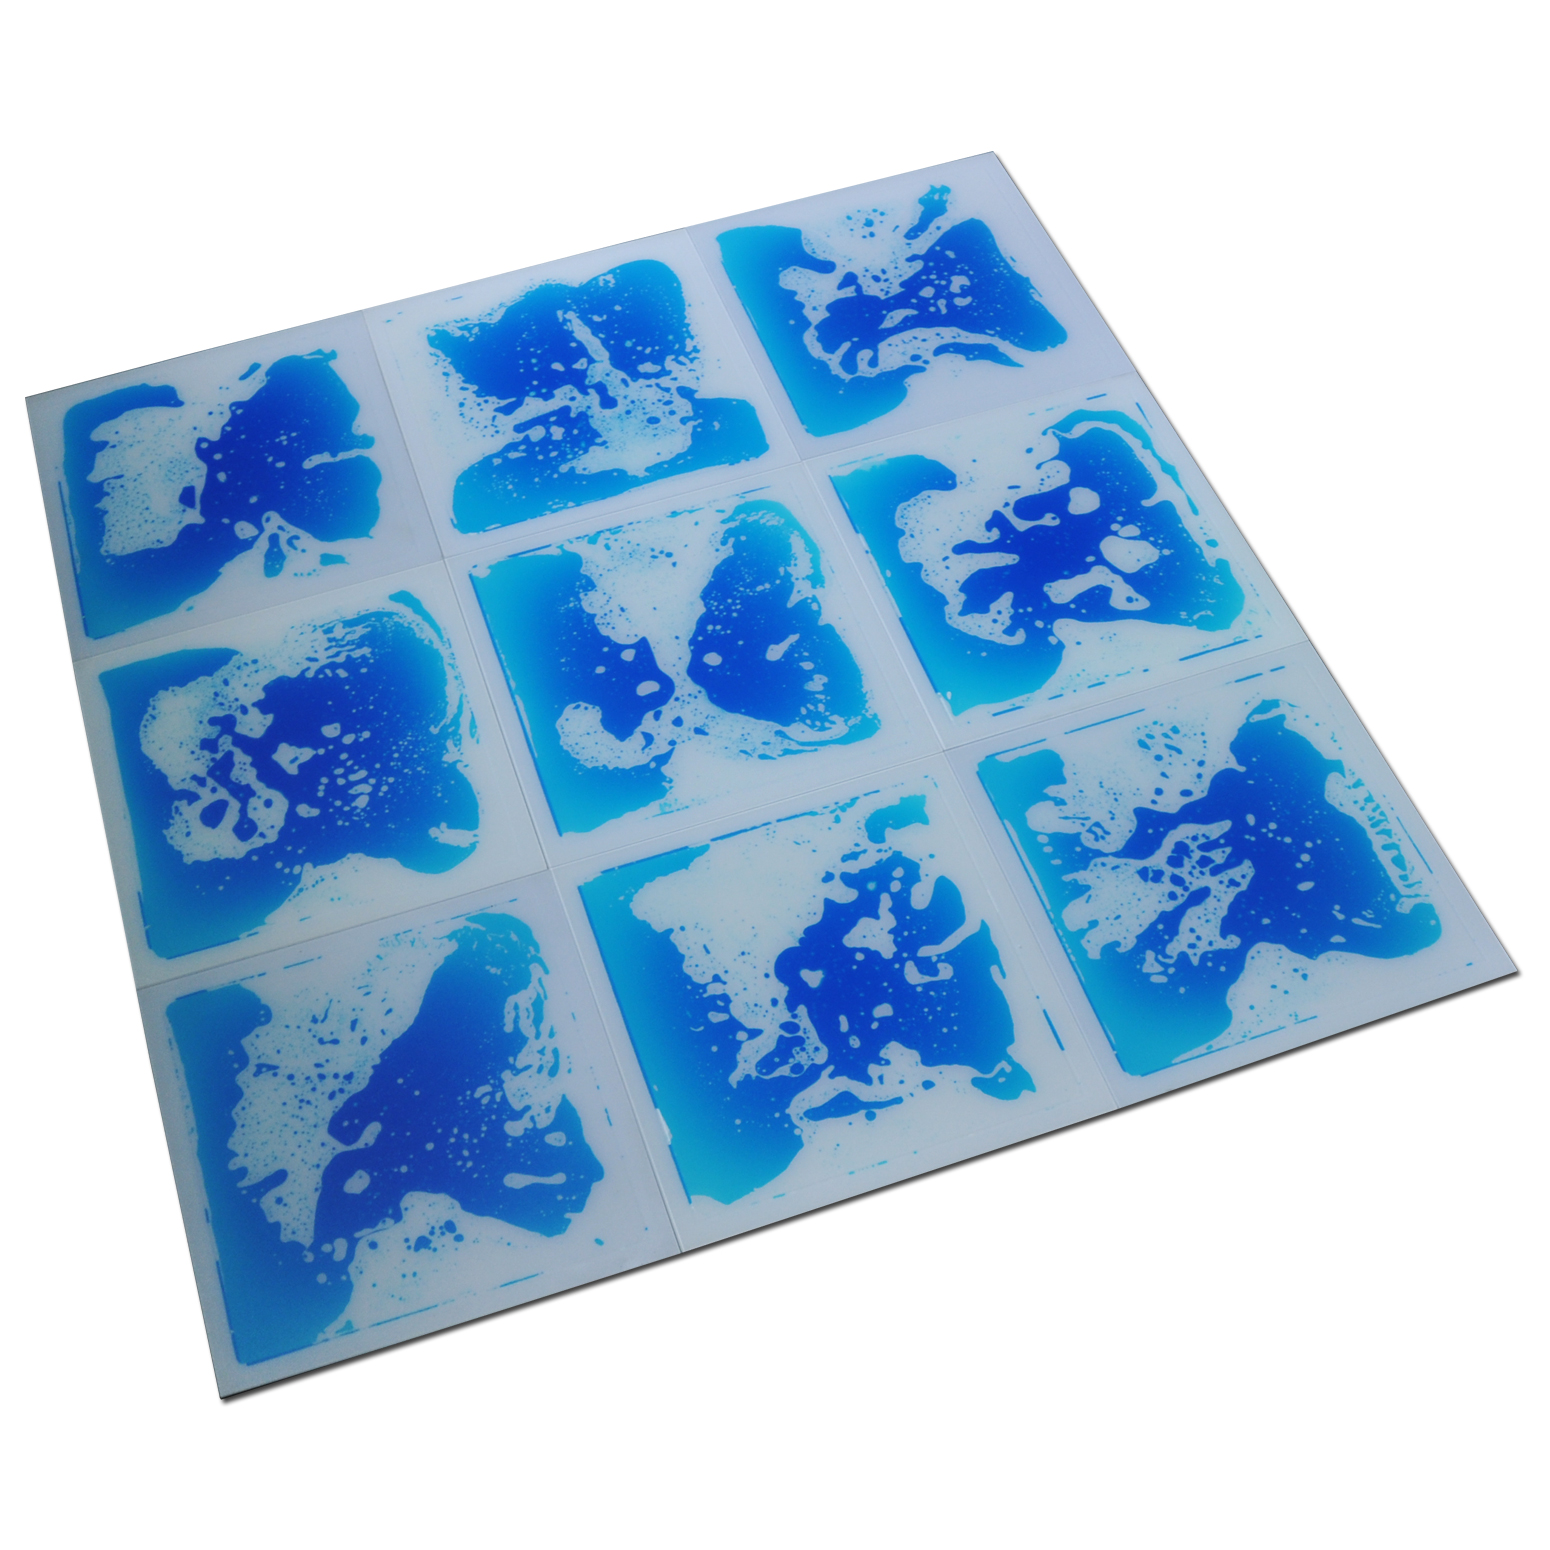 A11303 colorful liquid floor tile 12x12 home decor tiles for a11303 colorful liquid floor tile 12x12 home decor tiles for bar nightclub ktv decoration blue 30cm flooring tiles dailygadgetfo Choice Image